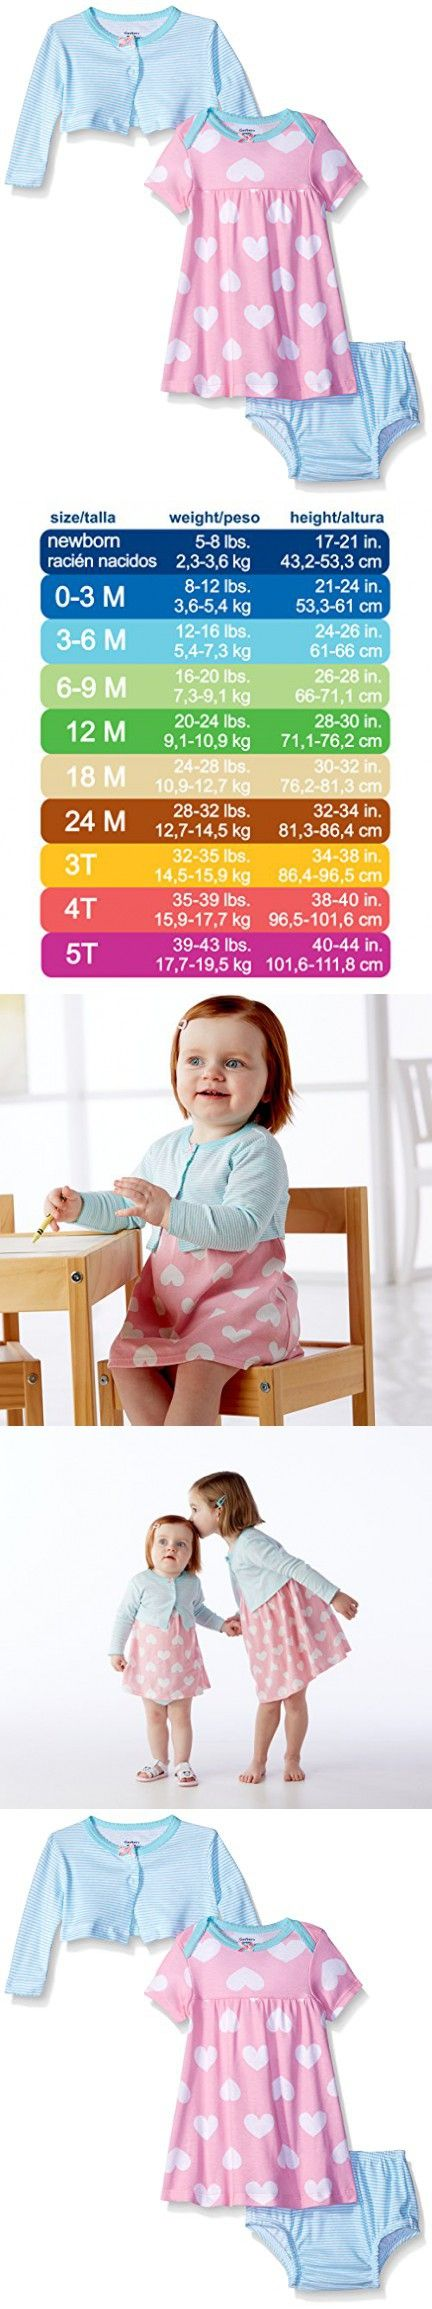 Gerber Baby Three-Piece Cardigan, Dress and Diaper Cover Set, Big Hearts, 0-3 Months